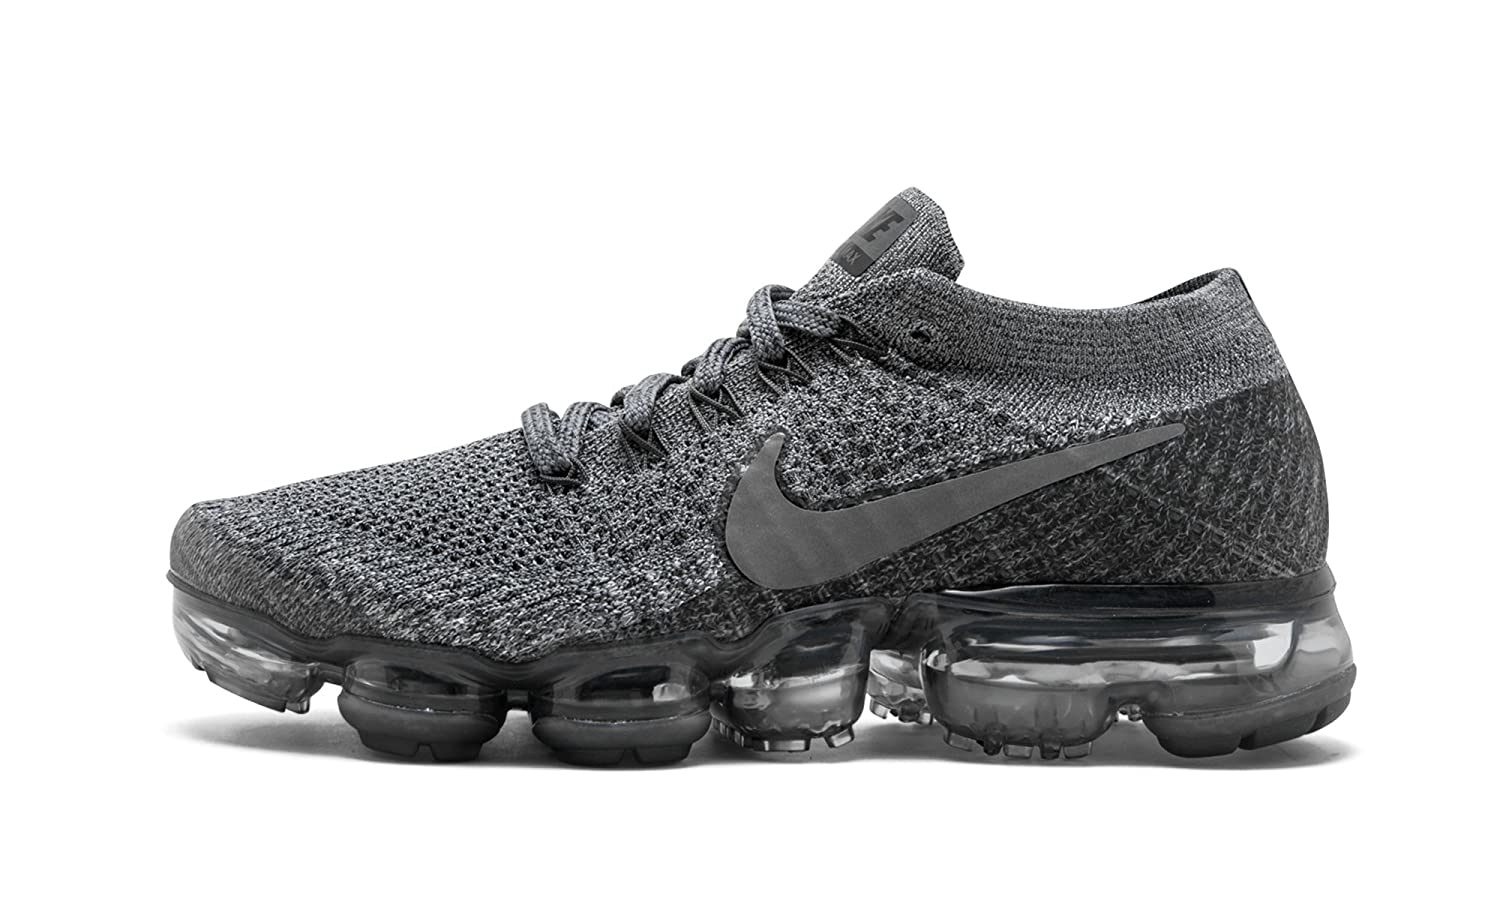 43ee779973c Amazon.com: Women's NikeLab Air VaporMax Flyknit Running Shoe: Clothing